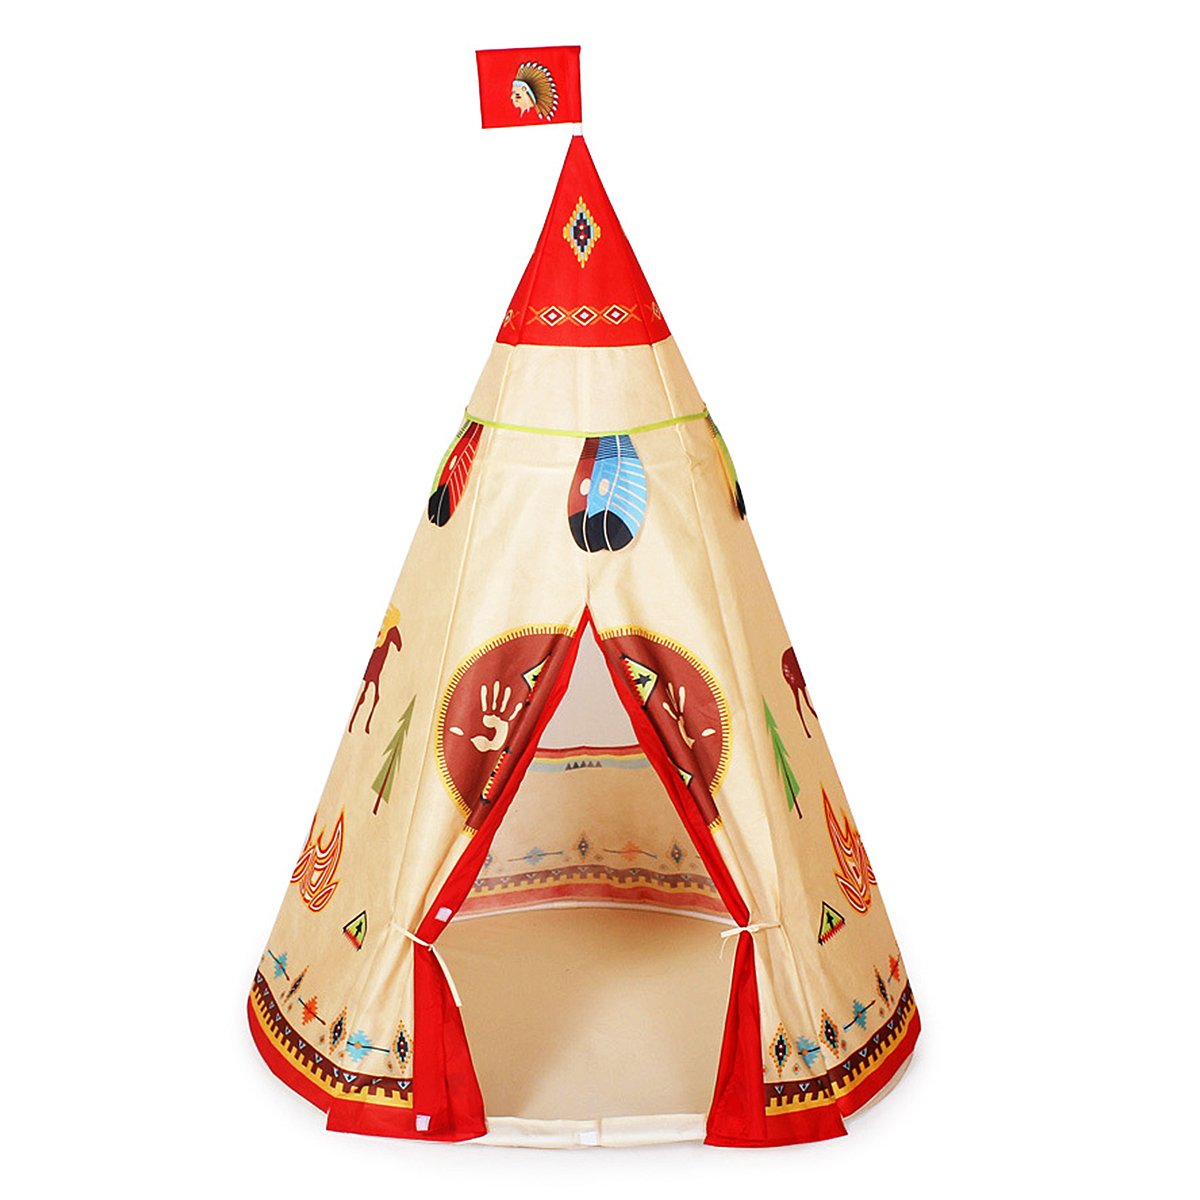 Design Childrens Teepee amazon com ylovetoys kids play tent indian teepee for children indoor outdoor use toys games